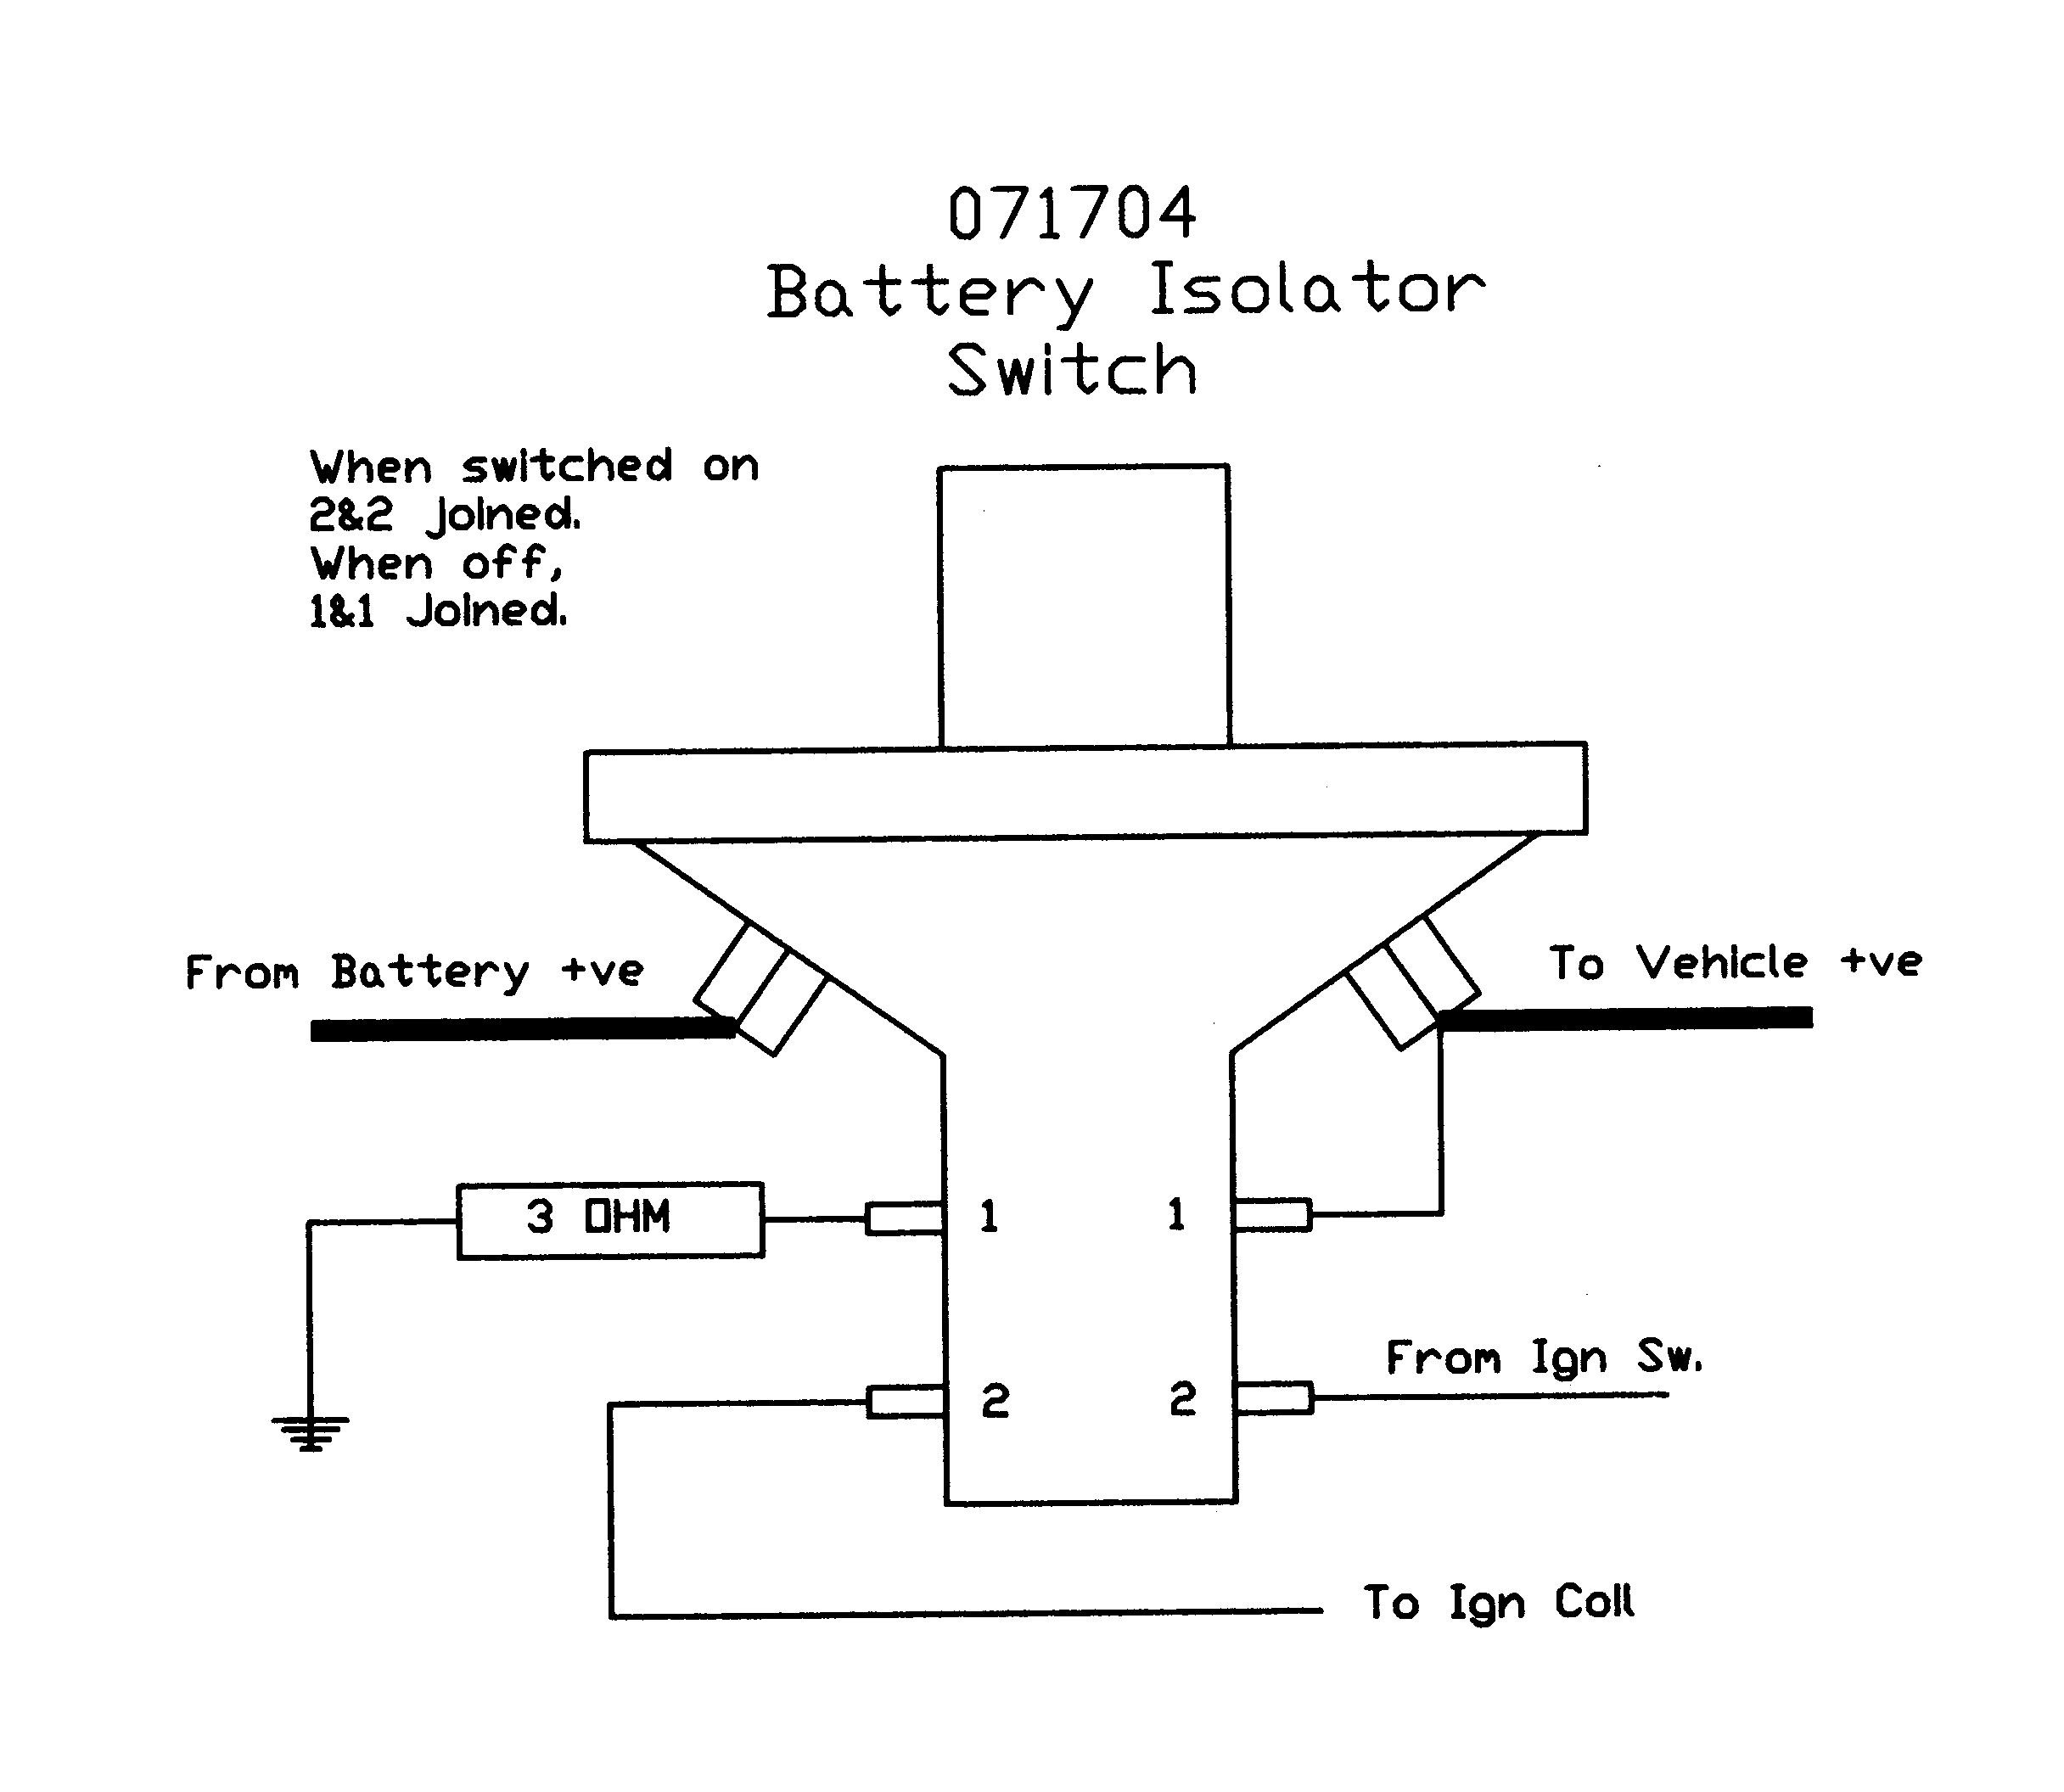 battery isolator switch removable key splash proof cover 071704 wiring diagram